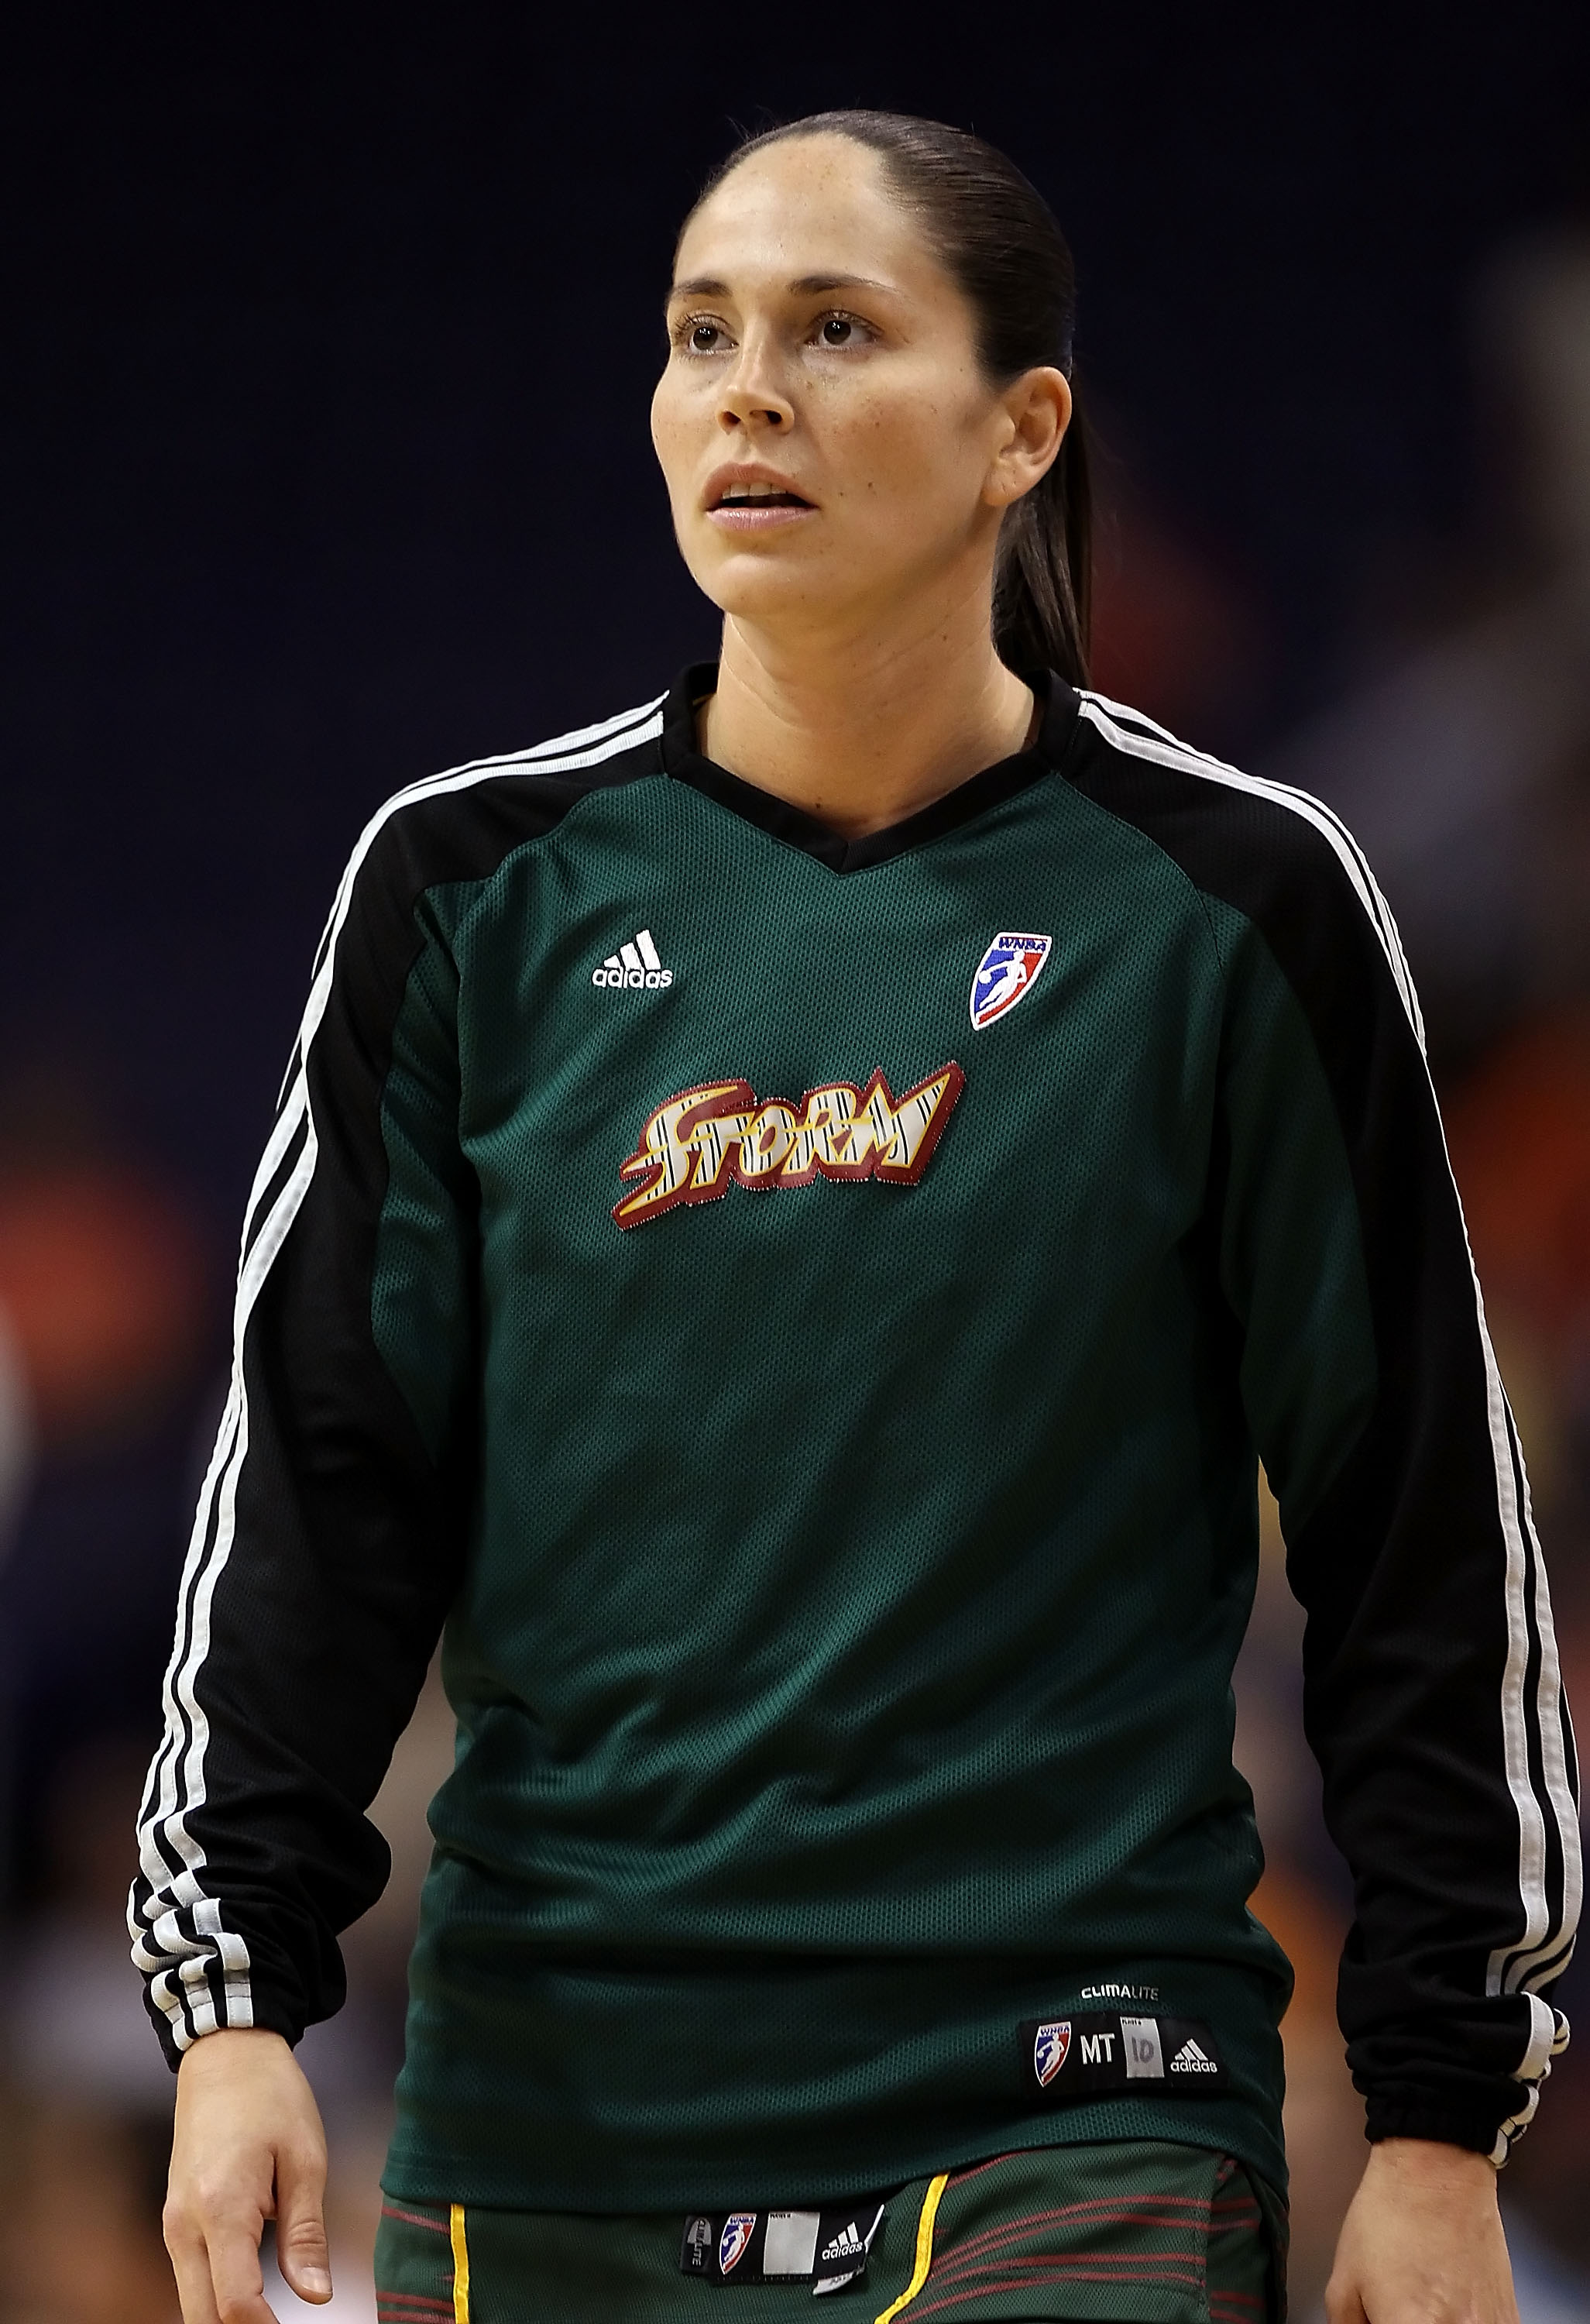 5e8a253f4a8c PHOENIX - JULY 14  Sue Bird  10 of the Seattle Storm warms up before